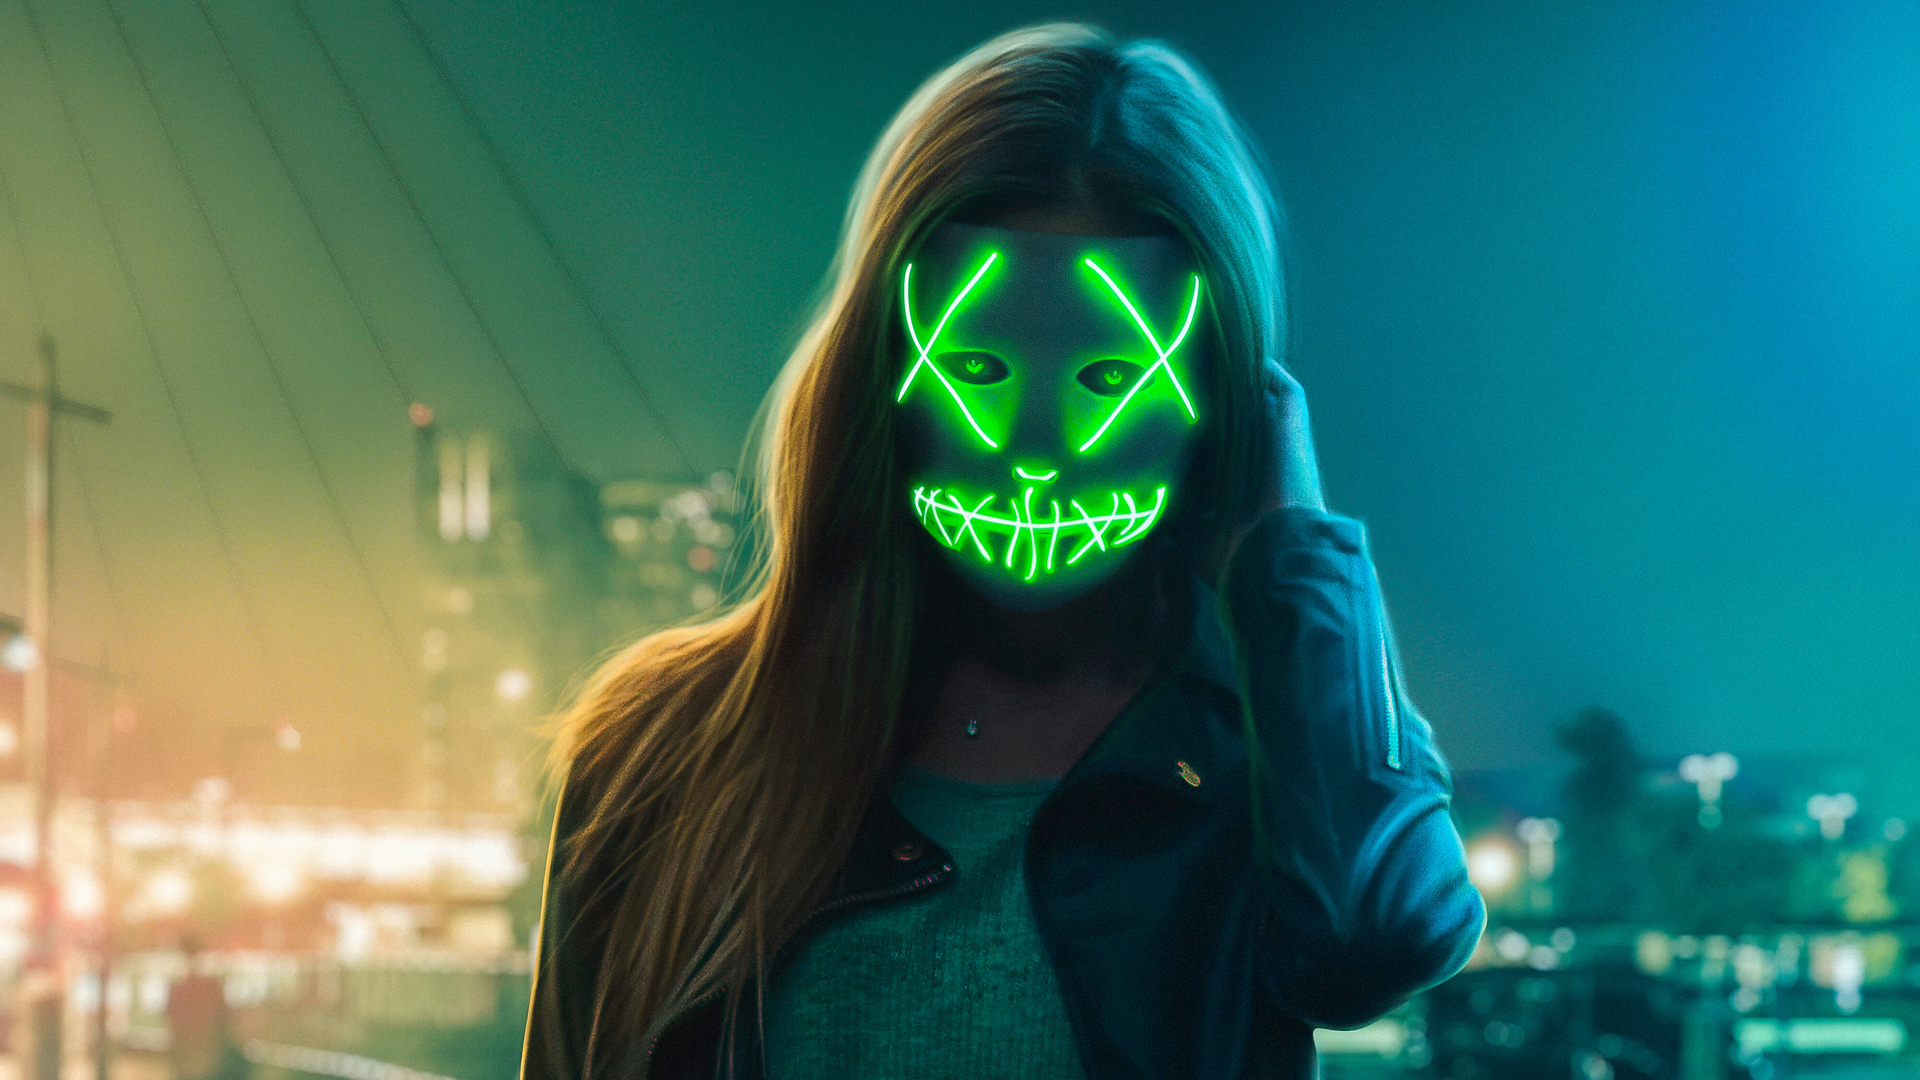 1920x1080 Neon Eye Mask Girl Laptop Full Hd 1080p Hd 4k